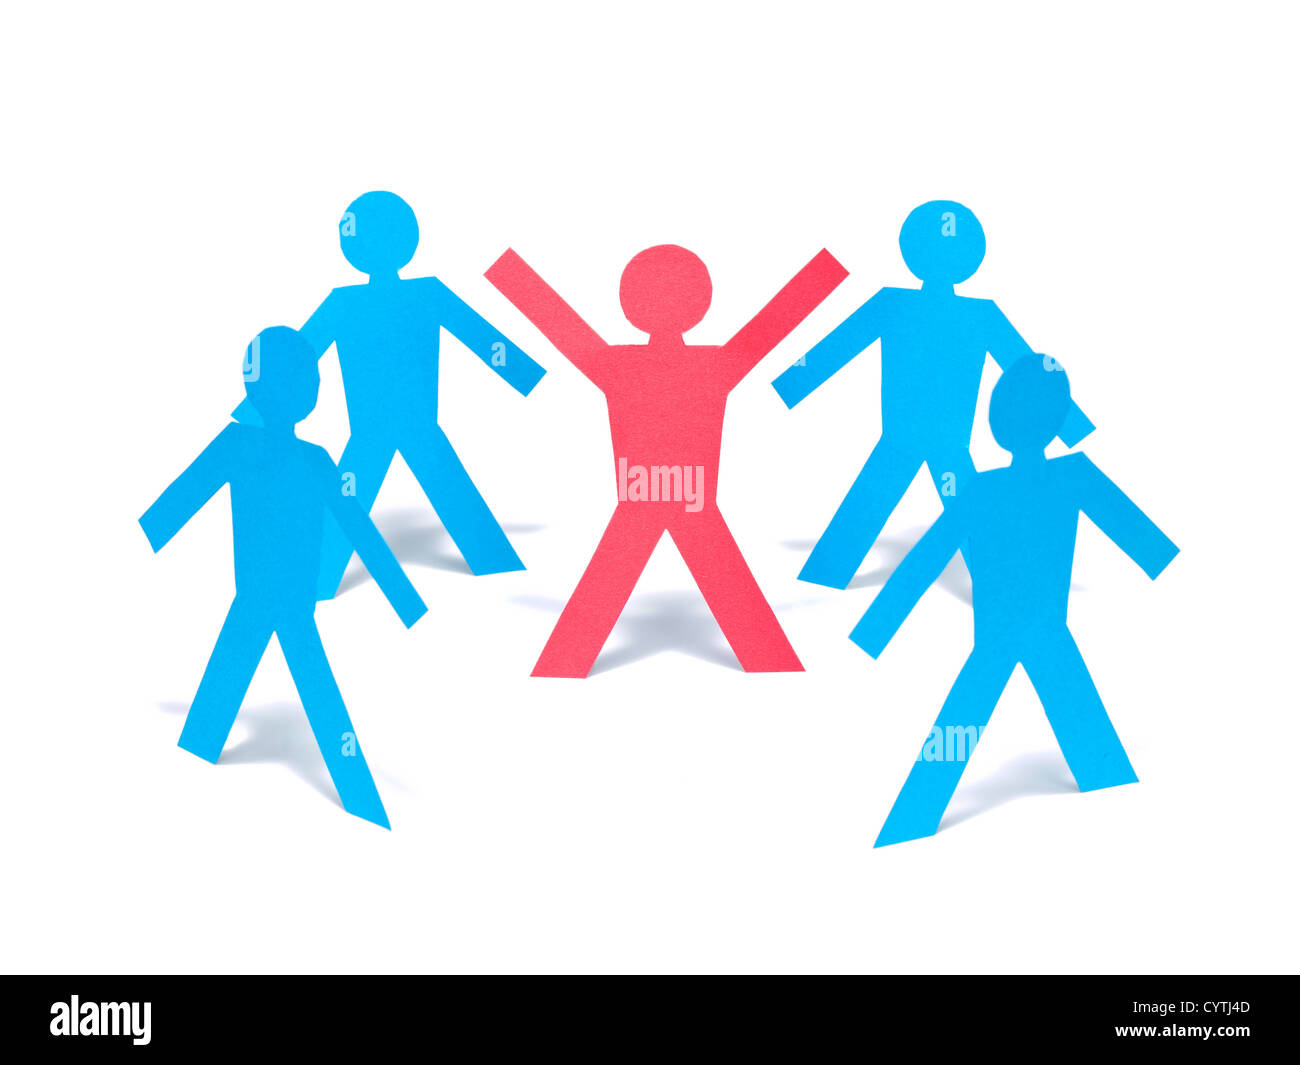 A red paper man is raising his arms among the blue paper men group. - Stock Image